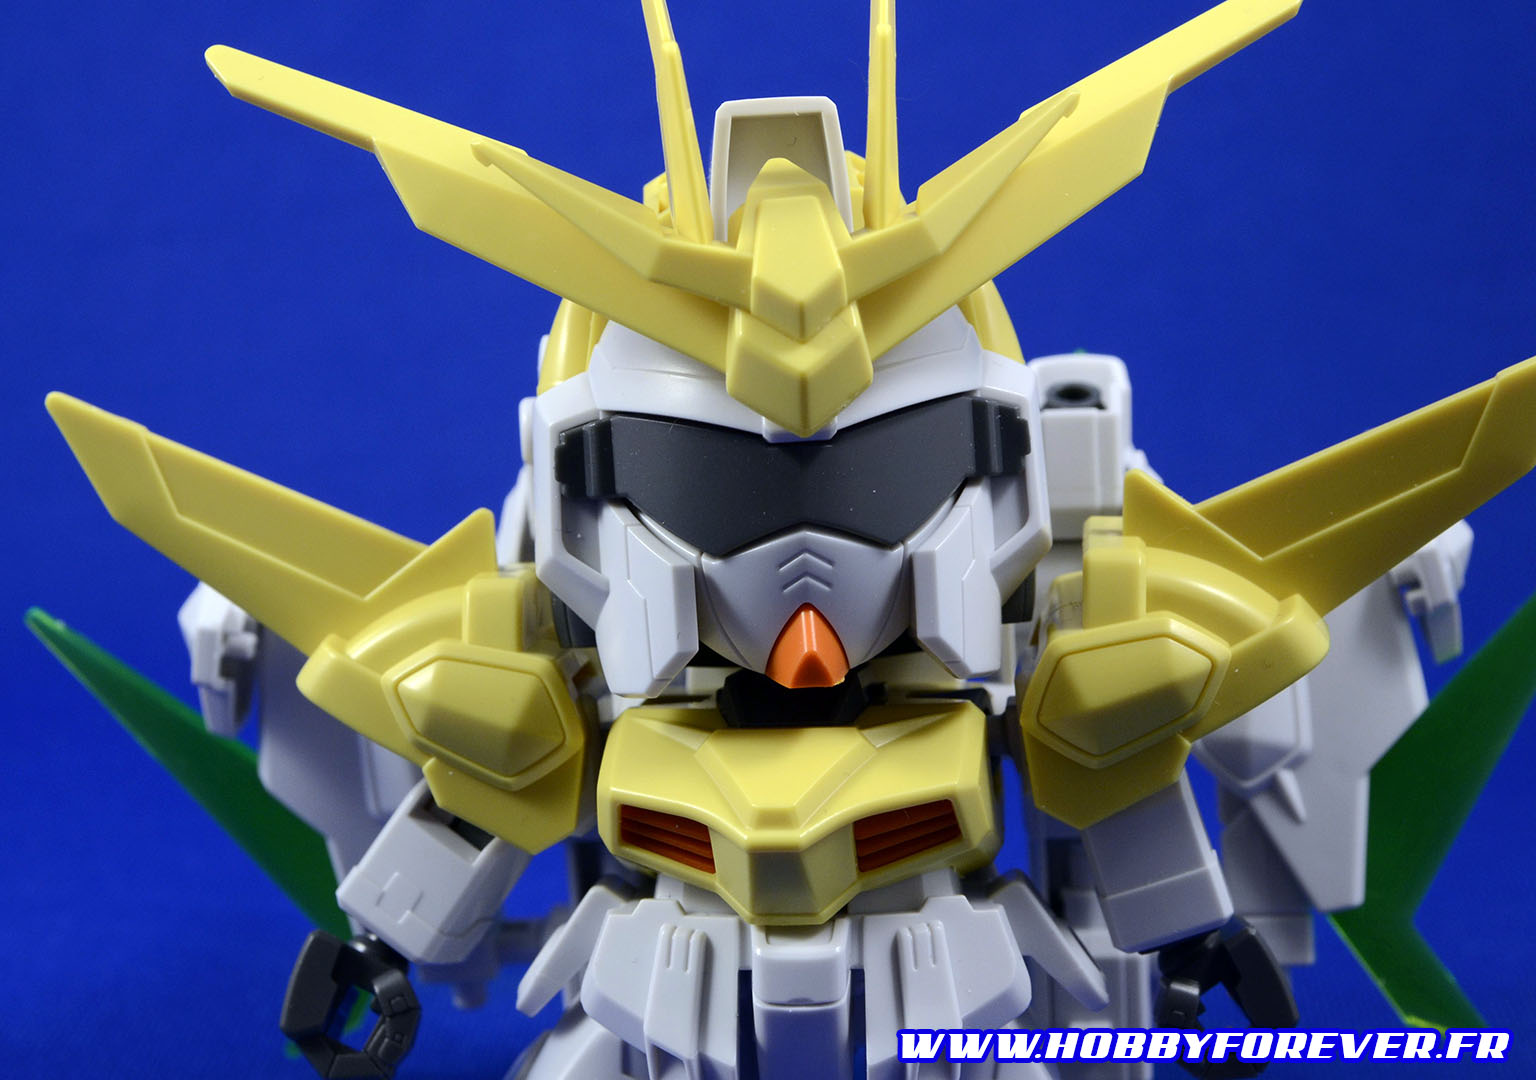 Review - SDBF Winning Gundam & Star Winning Gundam